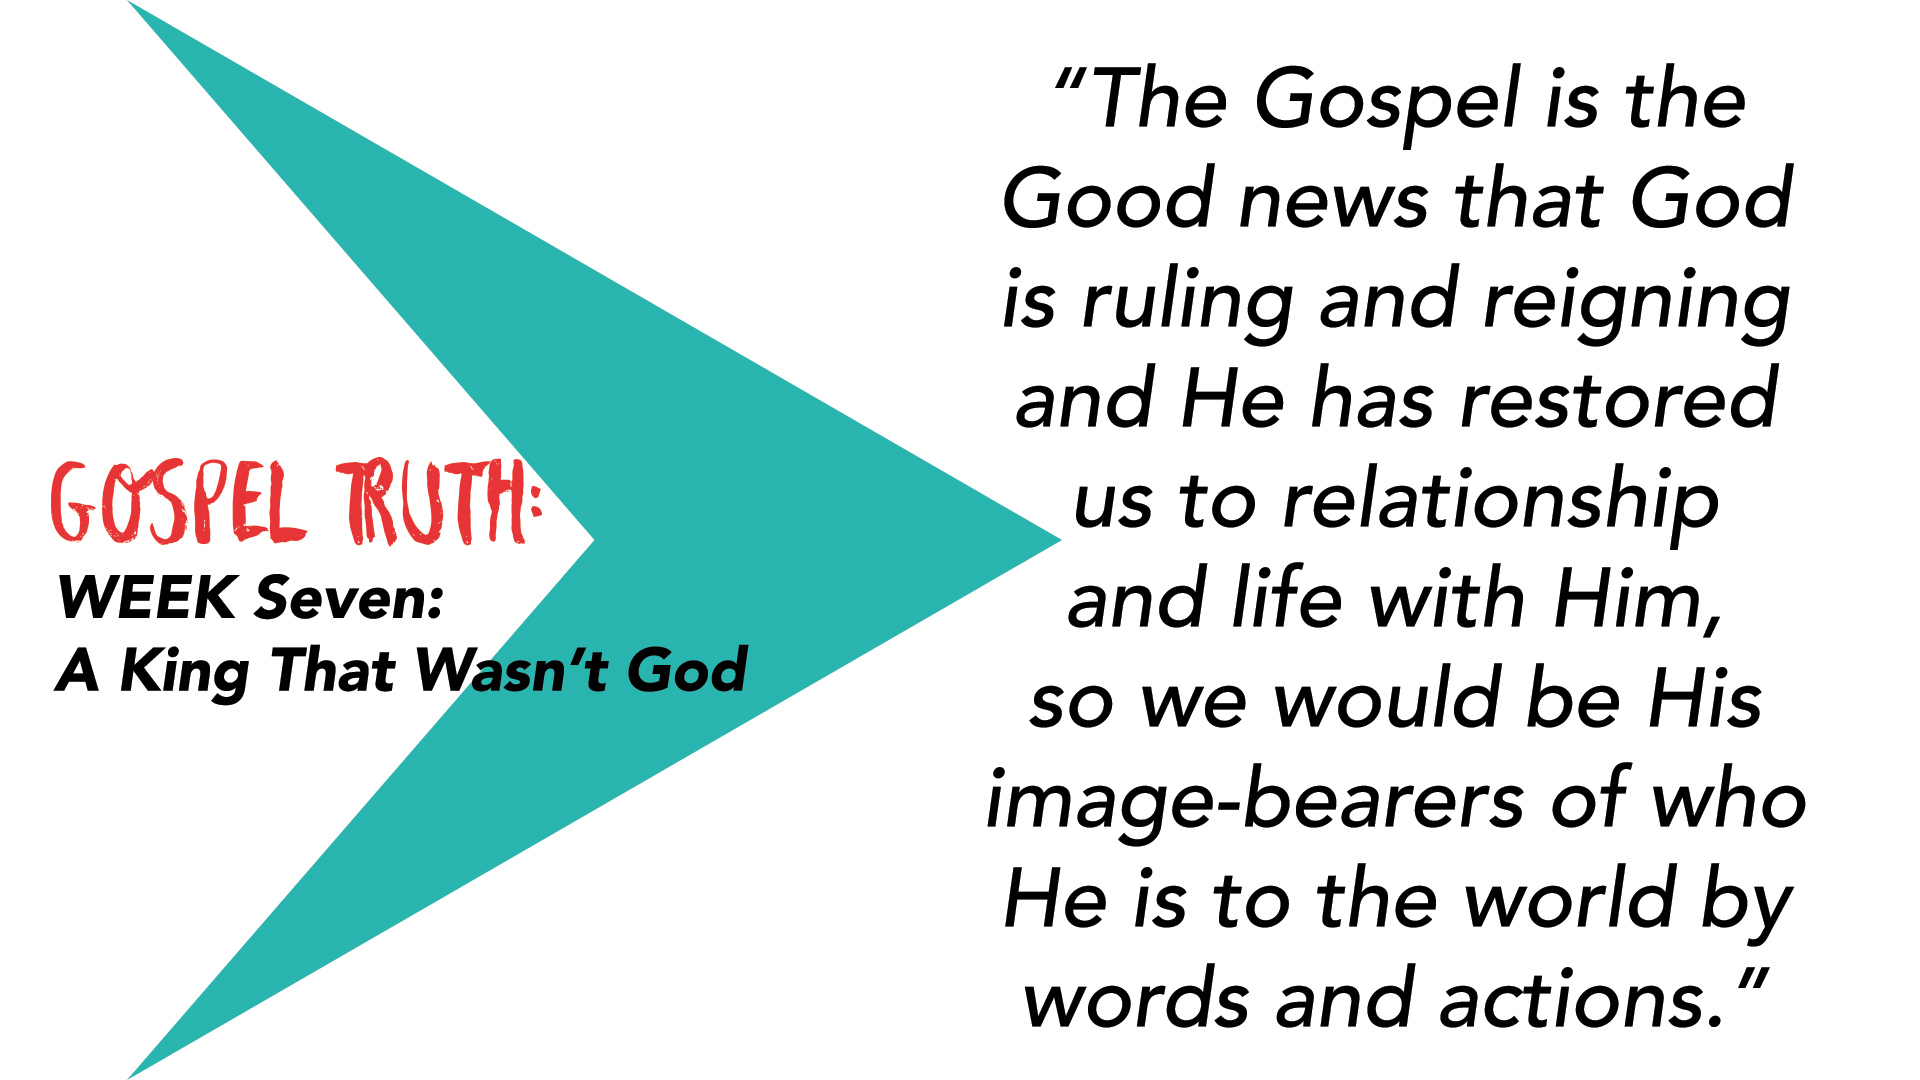 """The Gospel is the Good news that God is ruling and reigning and He has restored us to relationship and life with Him, so we would be His image-bearers of who He is to the world by words and actions."""